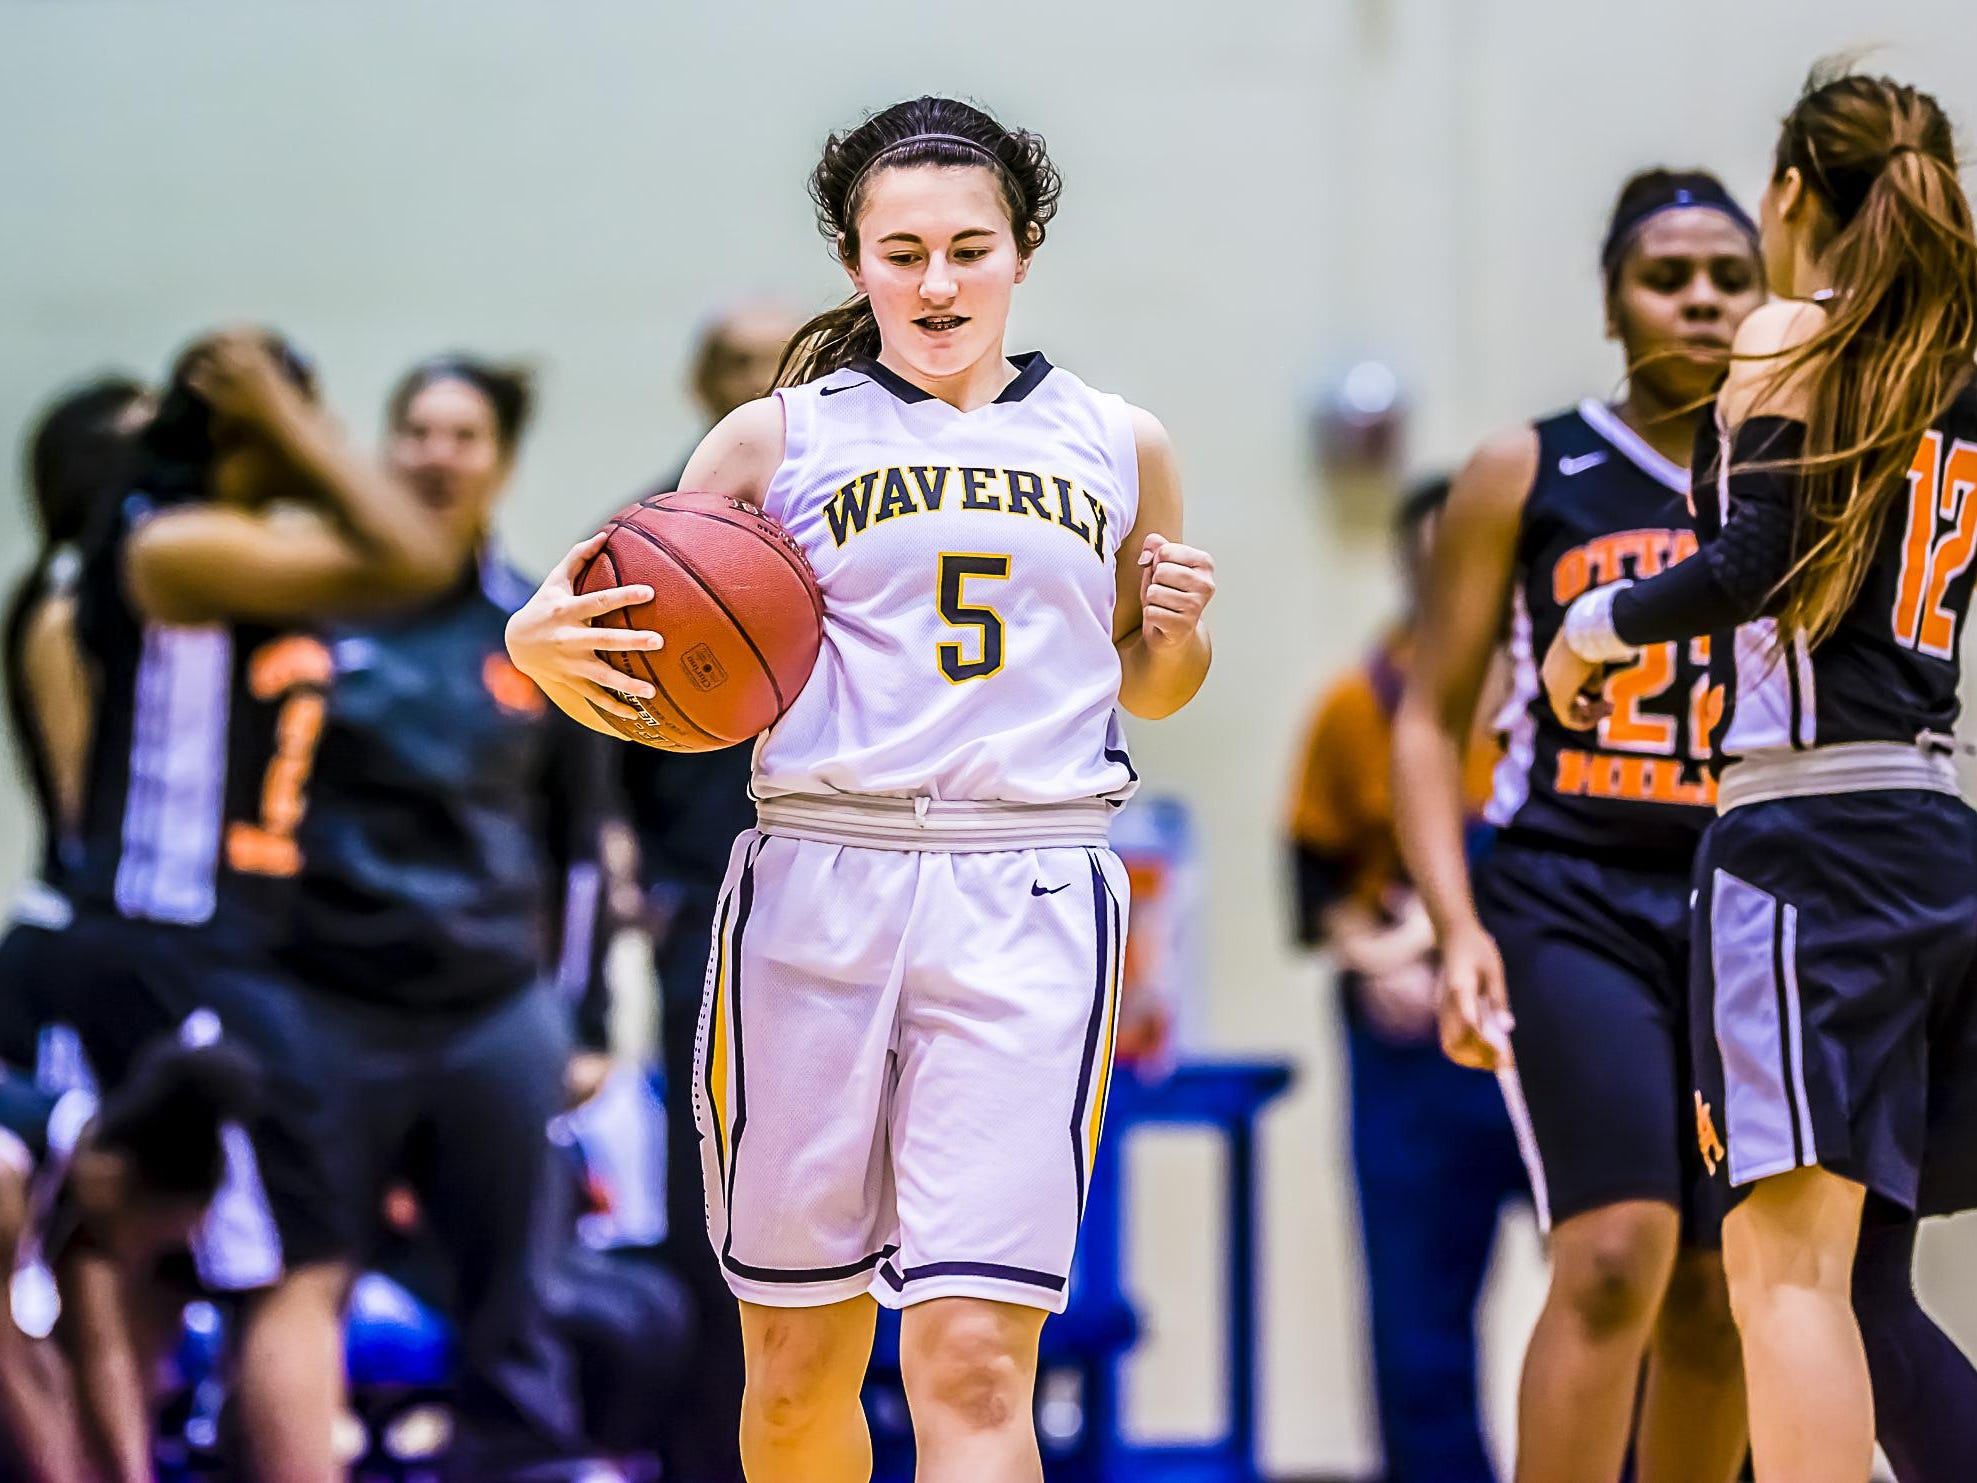 Sarah Miller of Waverly celebrates as time expires in the Warriors' 39-37 win over Ottawa Hills in their Holiday Hoops Invitational game Tuesday December 29, 2015 at Lansing Community College. KEVIN W. FOWLER PHOTO